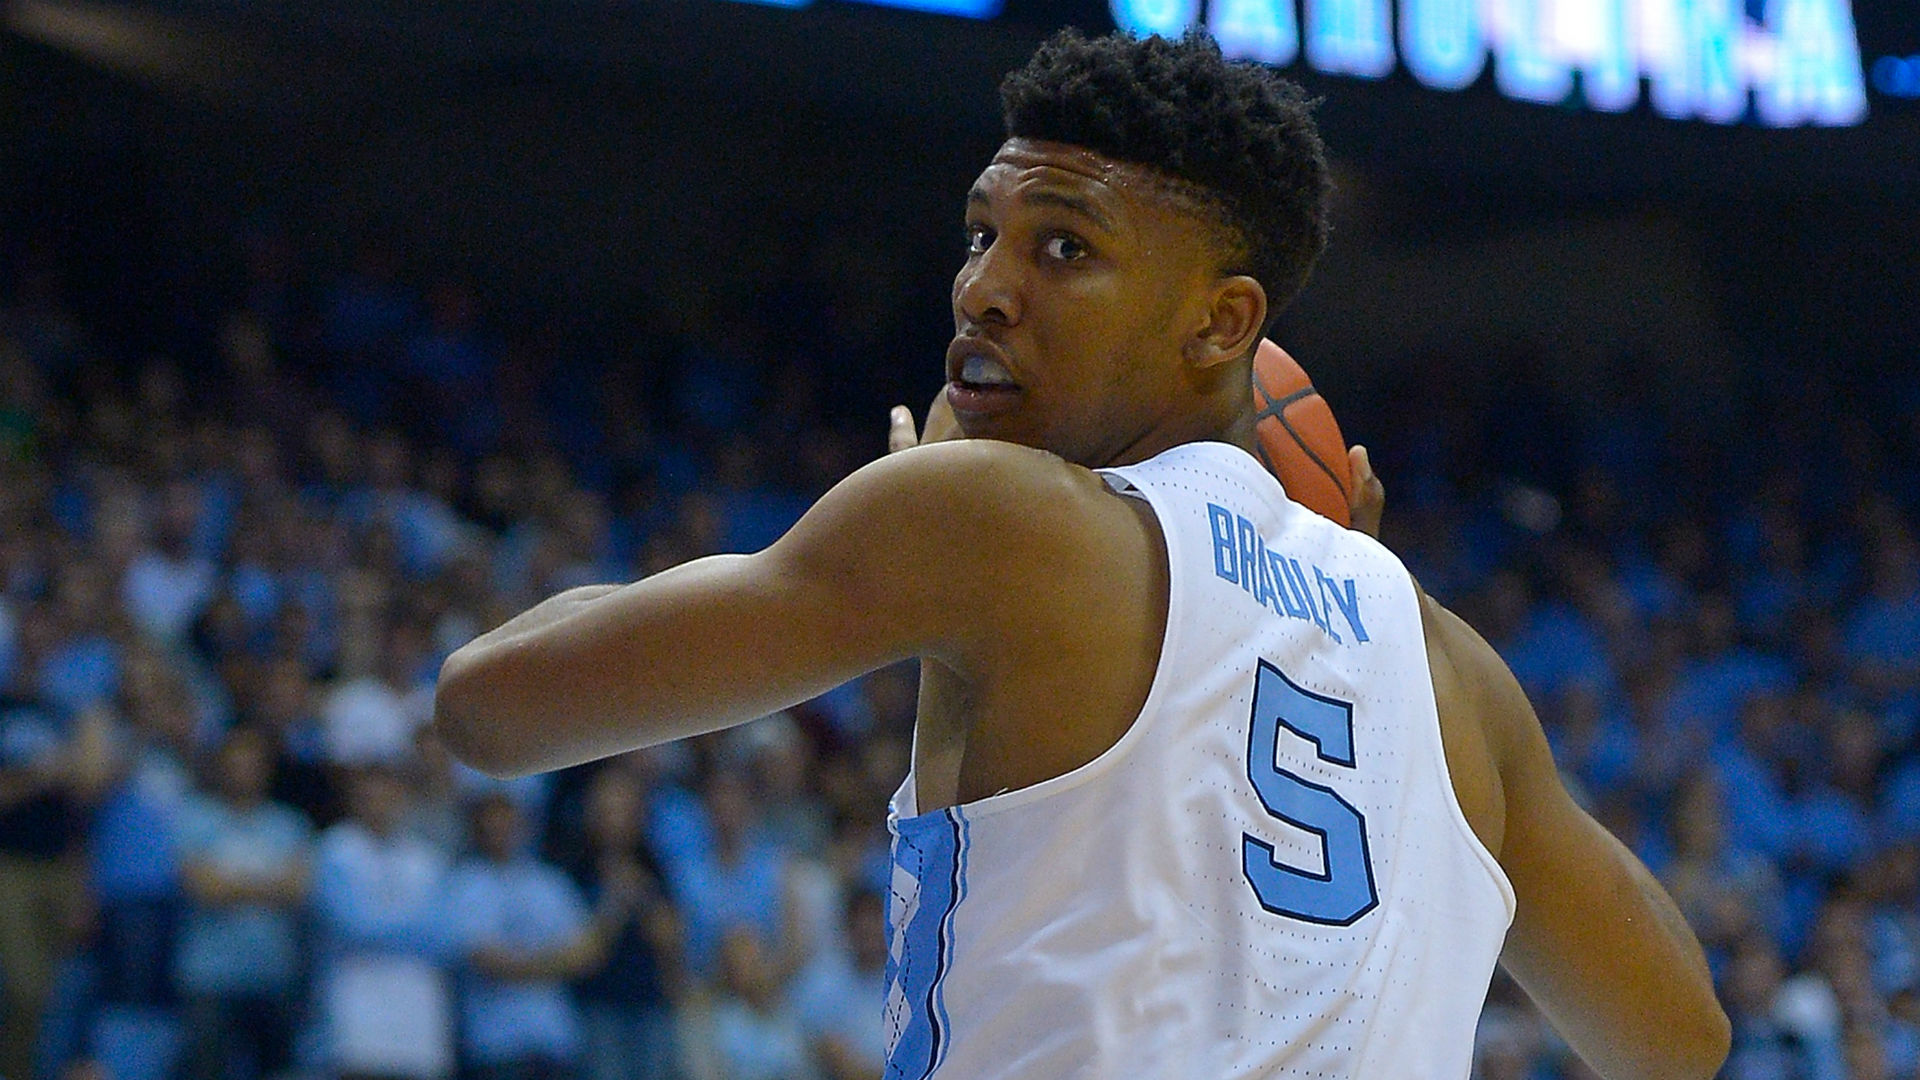 UNC's Tony Bradley to remain in NBA Draft